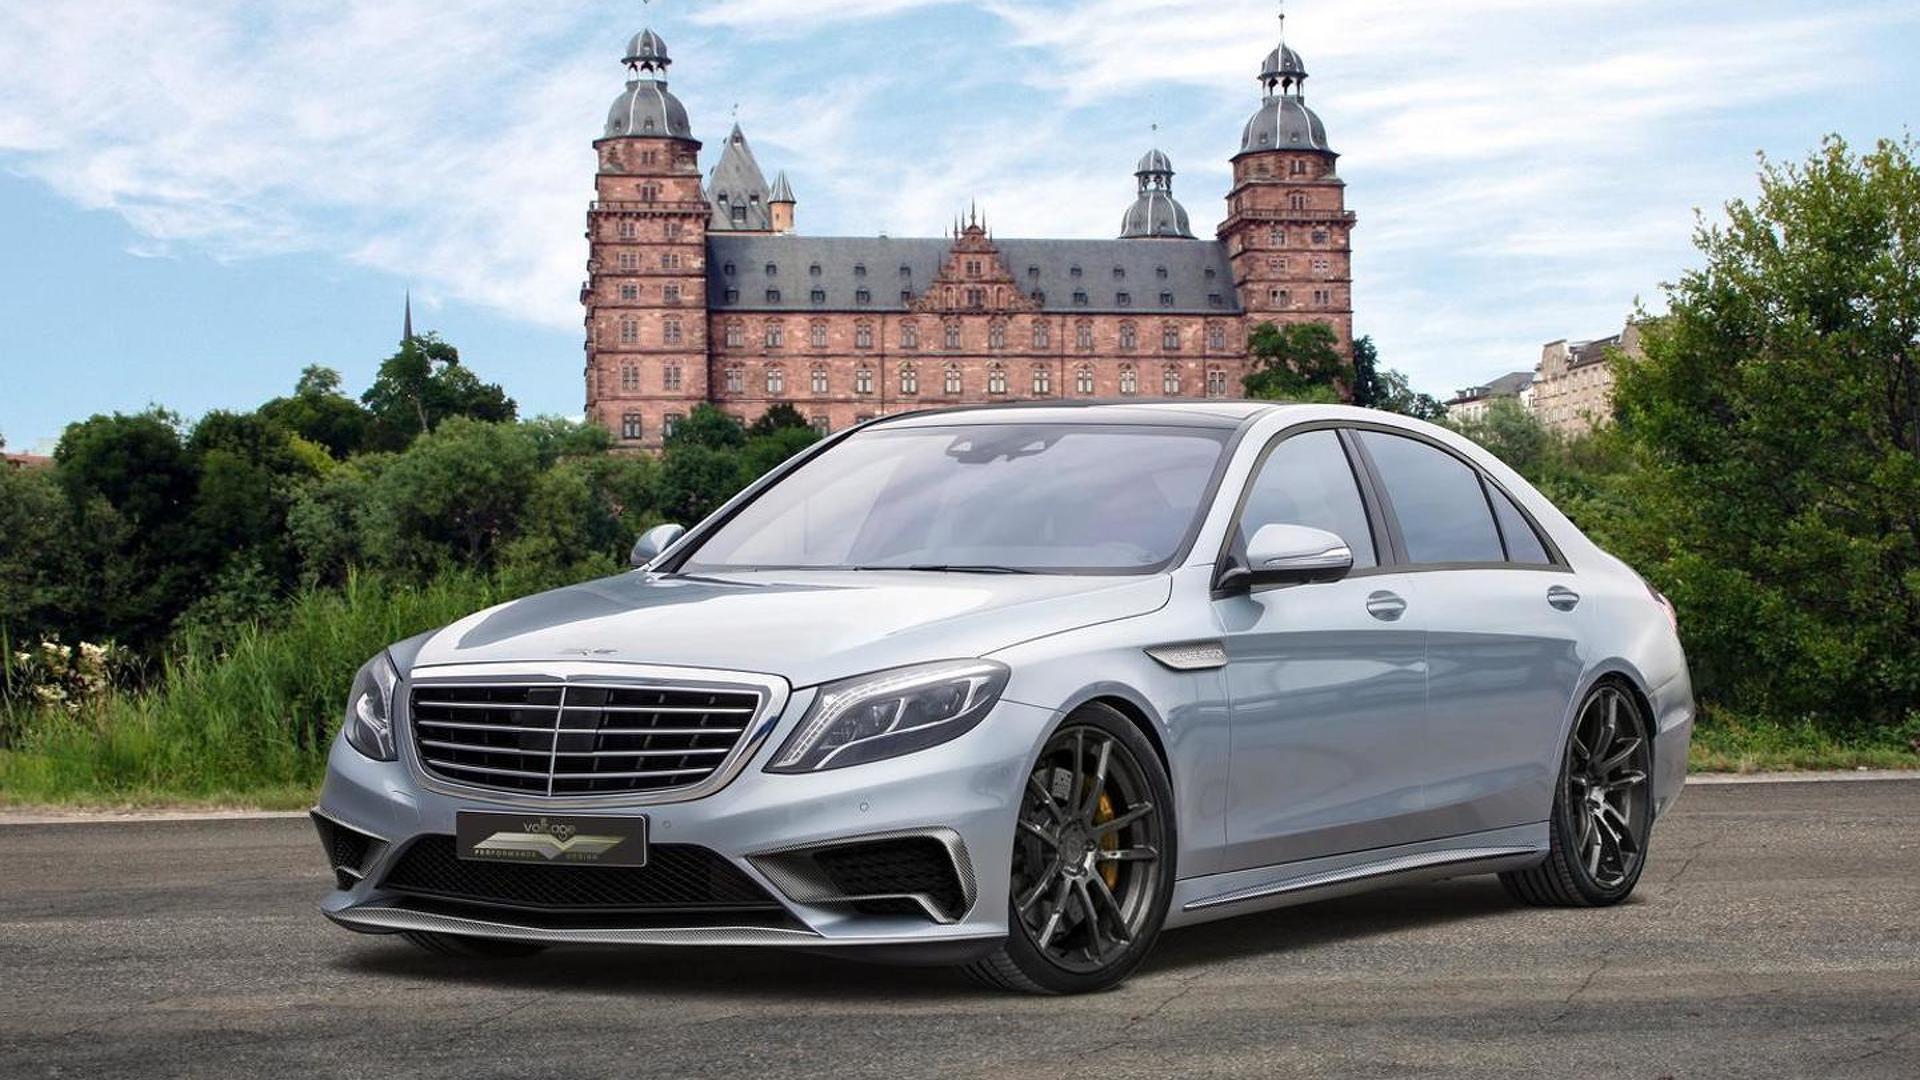 Mercedes Benz S65 AMG Wallpapers Images Photos Pictures 1920x1080